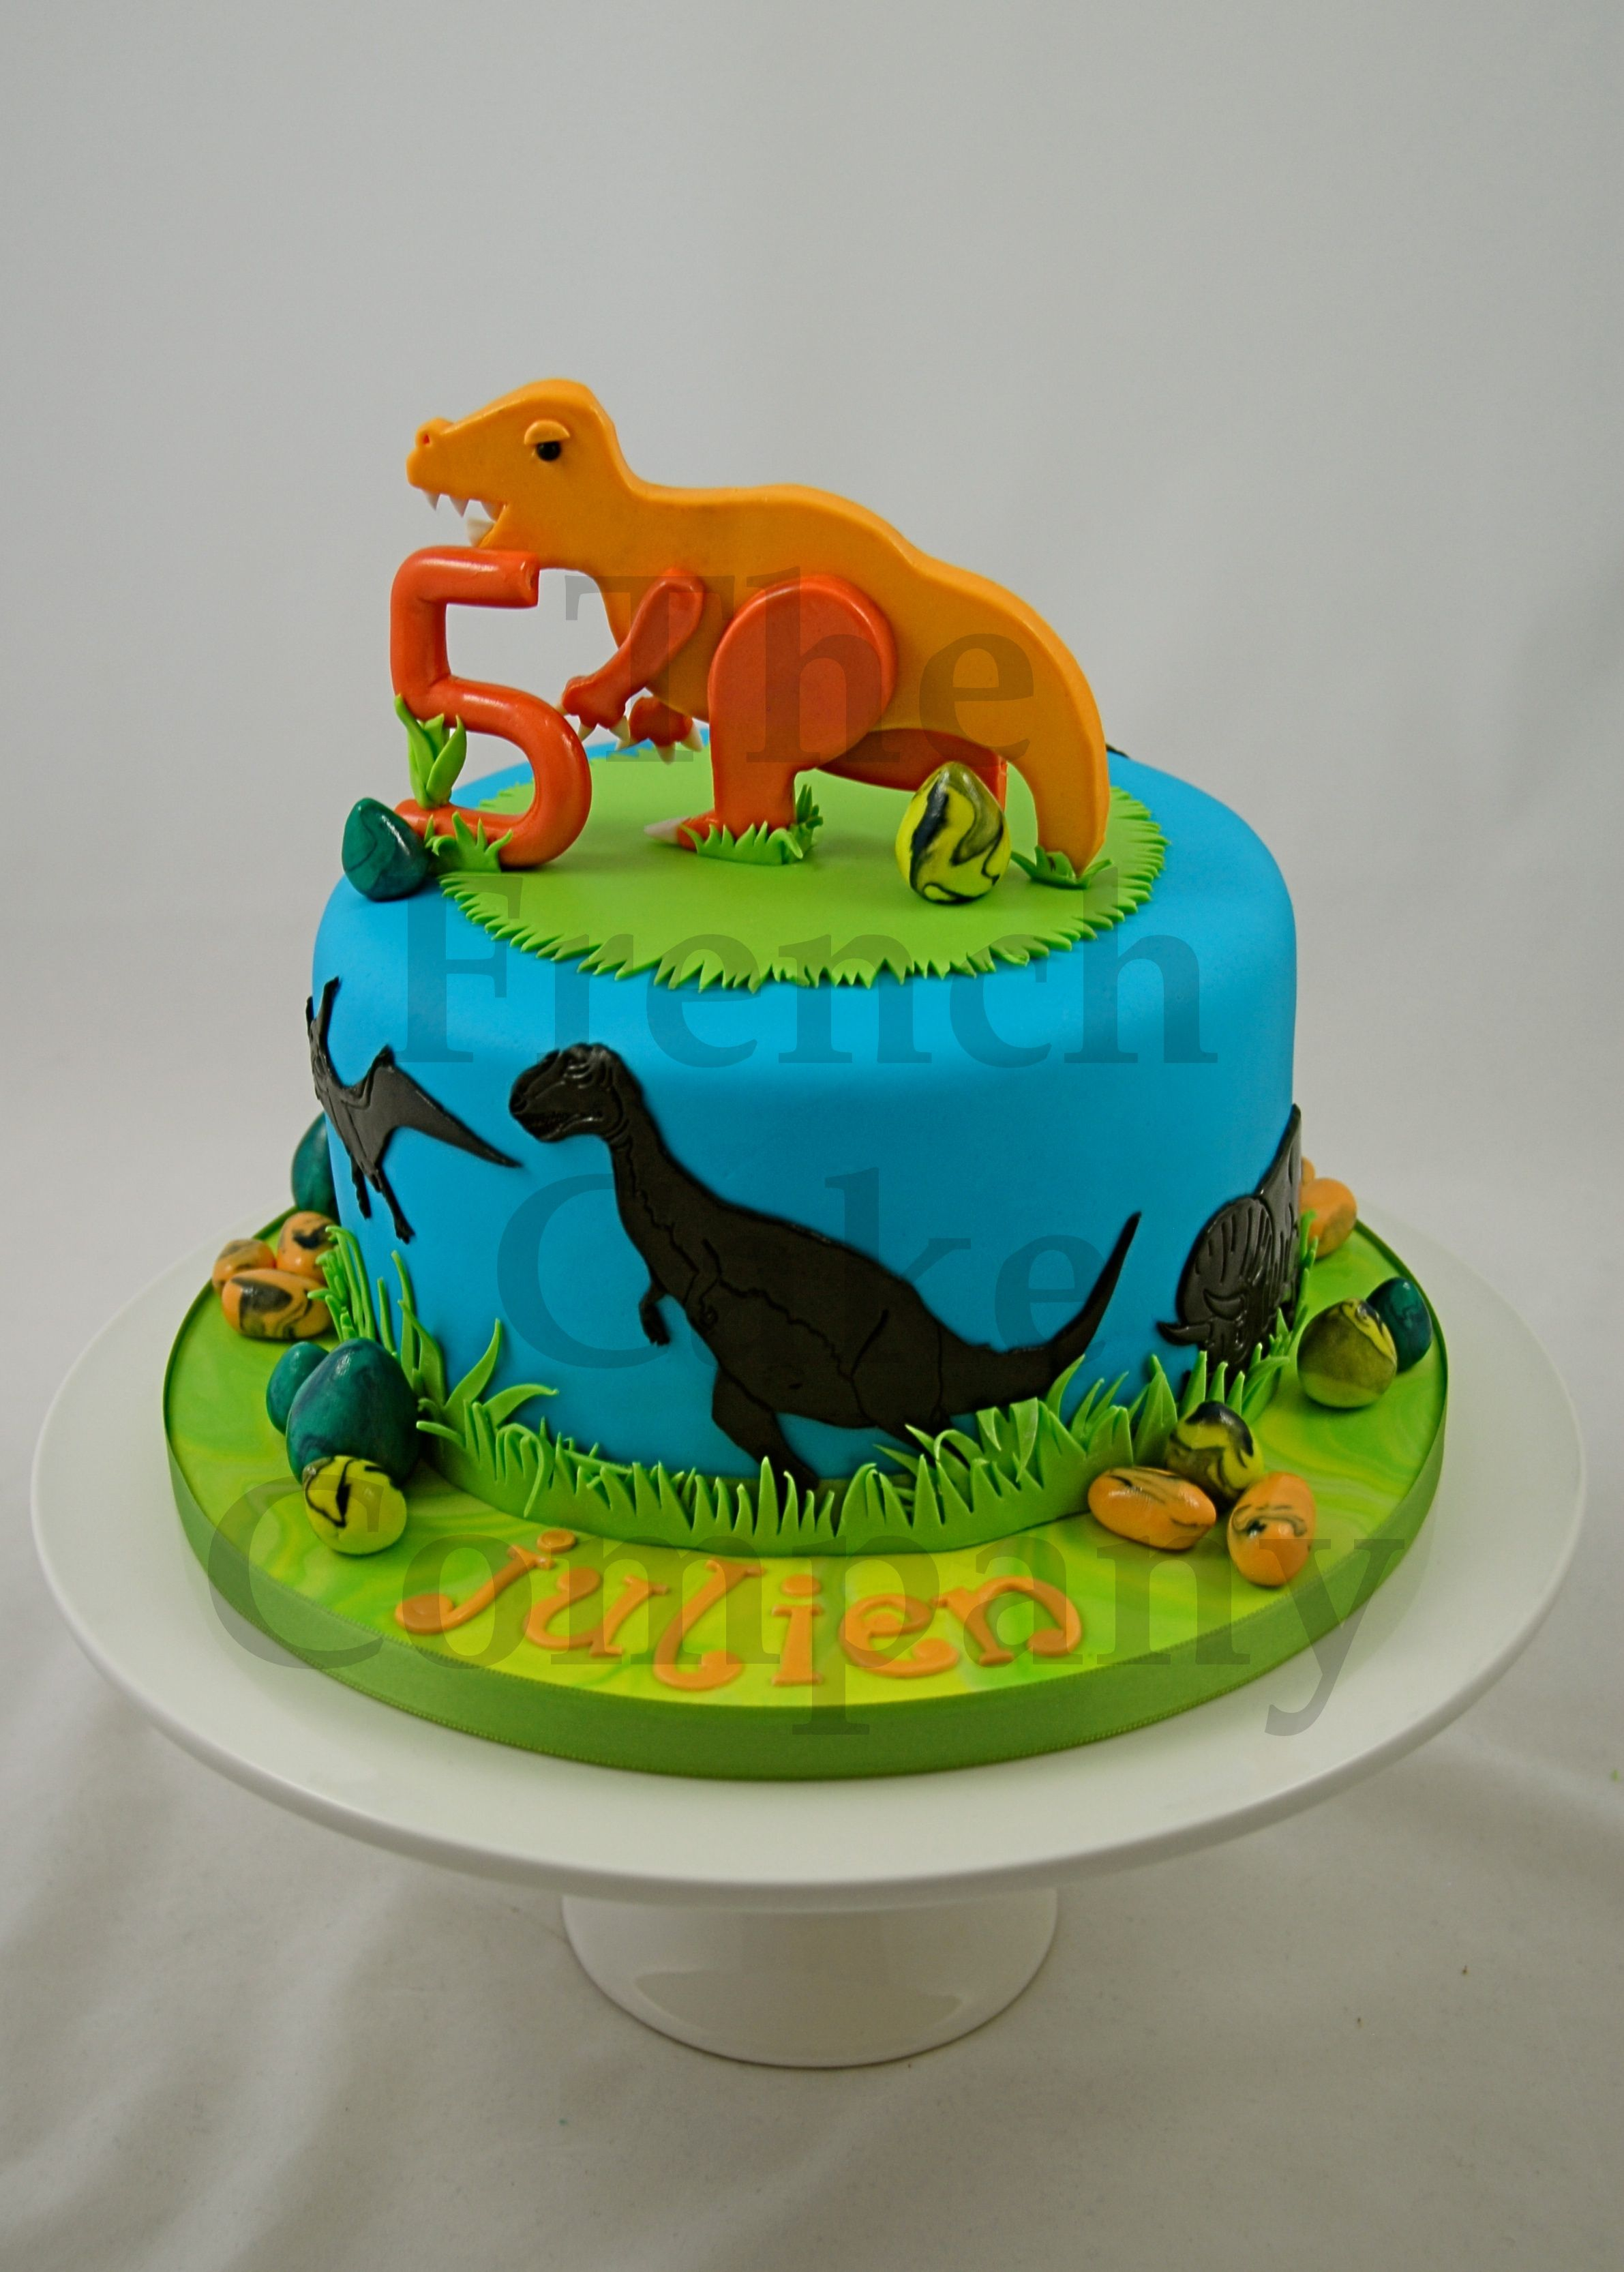 cake for boys dinosaur gateau d 39 anniversaire pour enfants garcon dinosaure. Black Bedroom Furniture Sets. Home Design Ideas